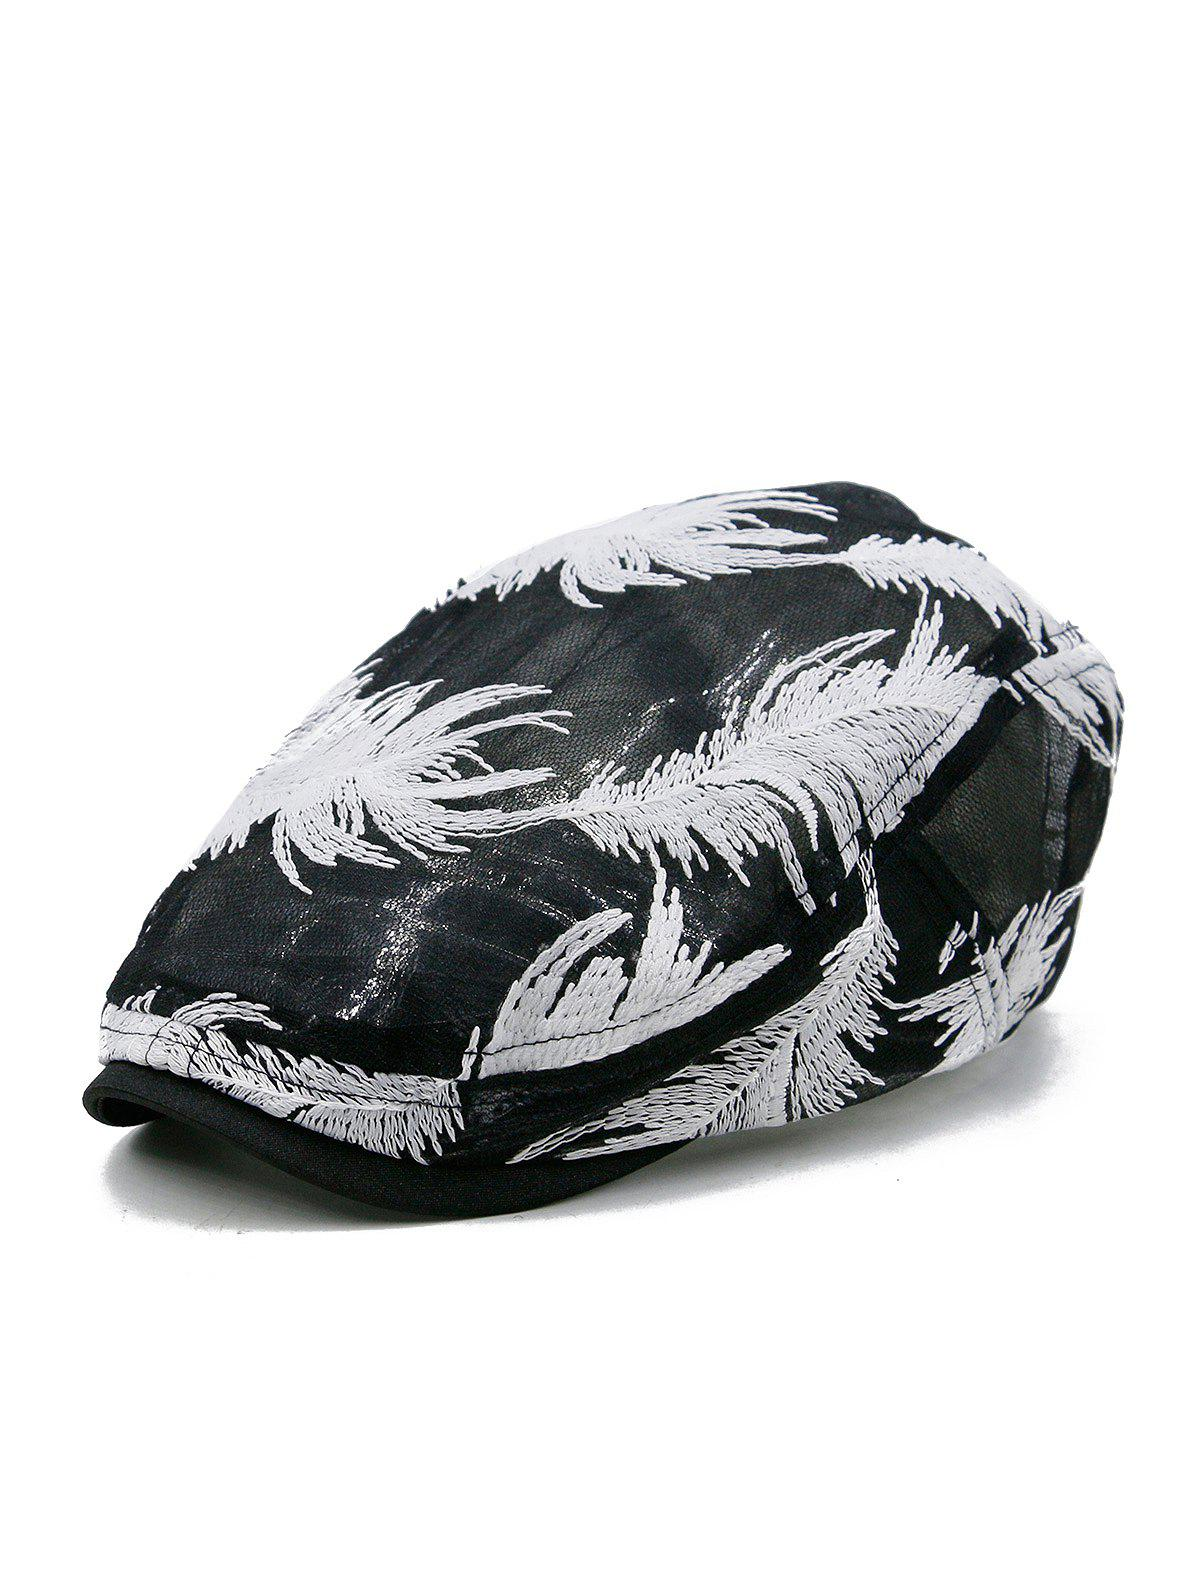 Unique Feather Pattern Decorative Sunscreen Hat